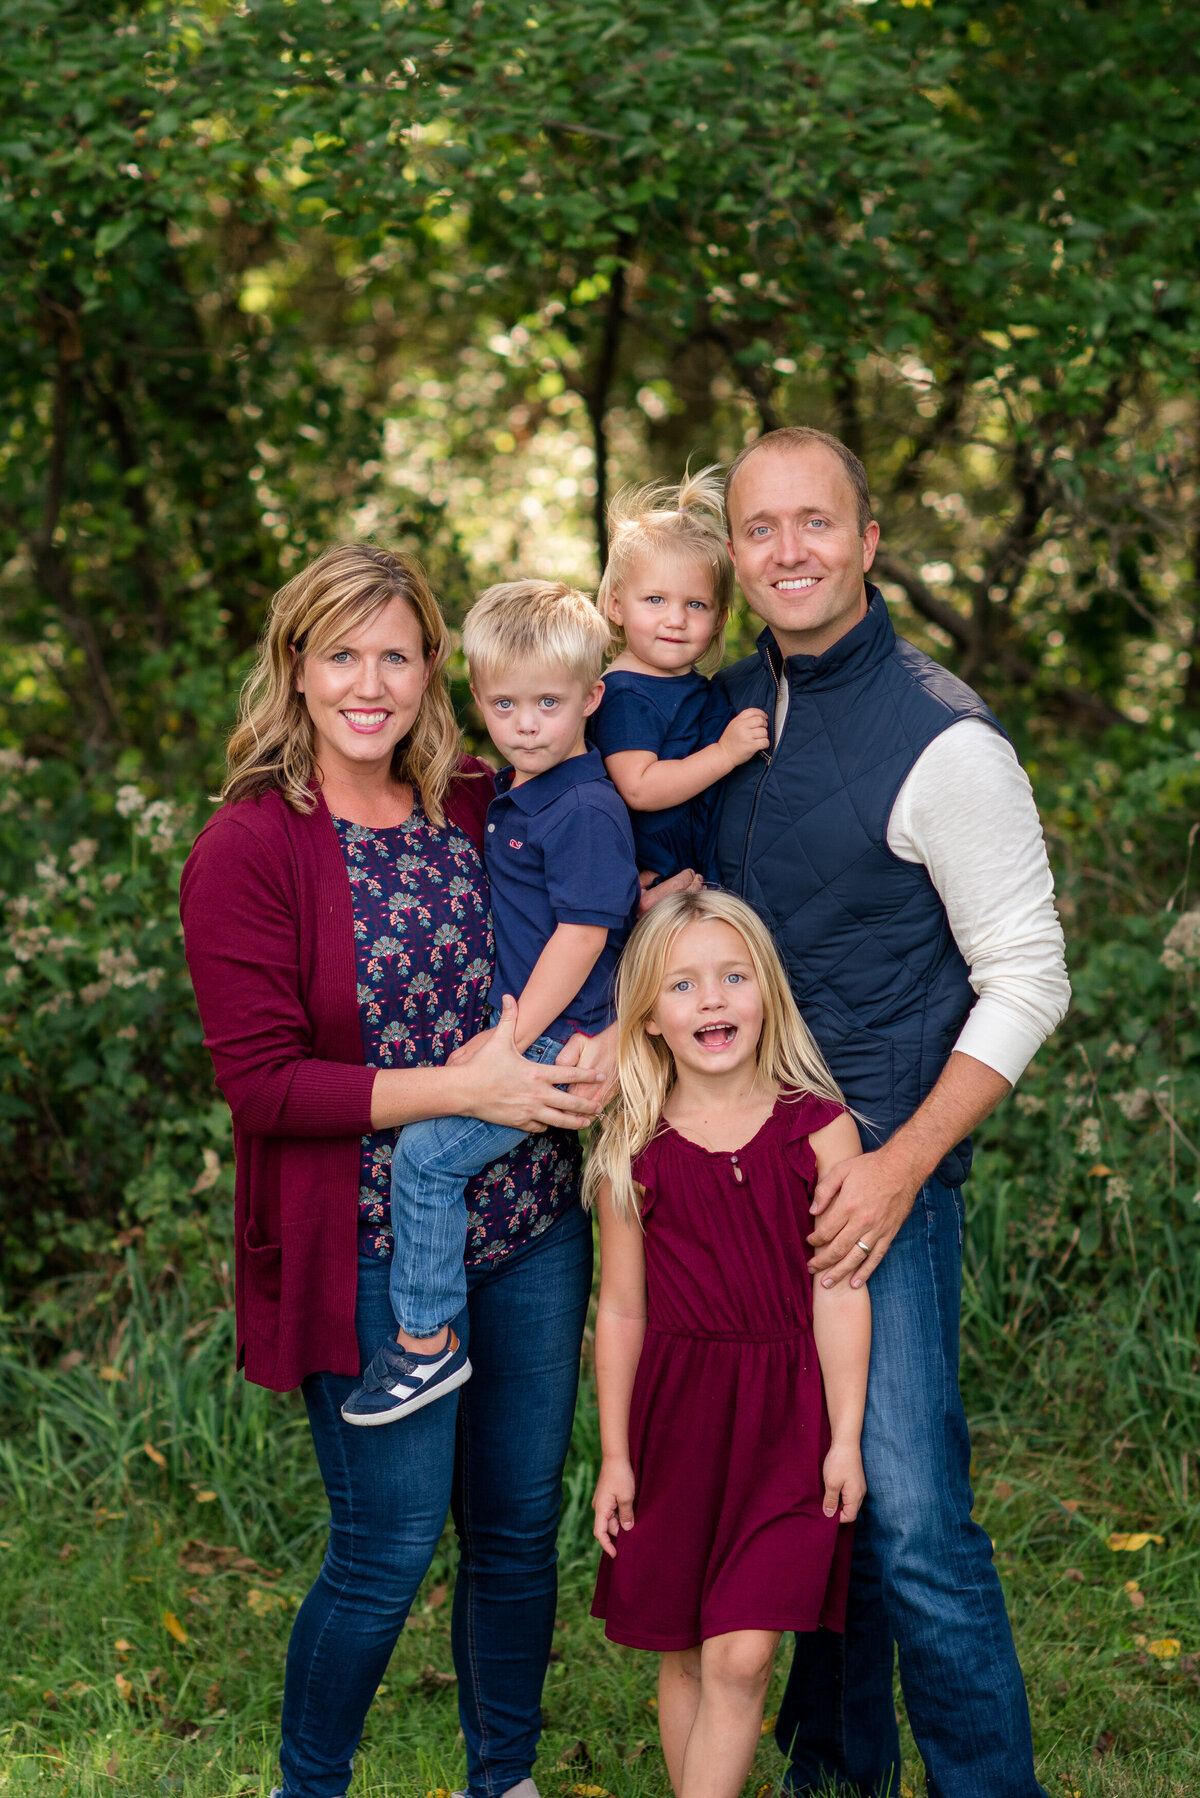 Des-Moines-Iowa-Family-Photographer-Theresa-Schumacher-Photography-Fall-Navy-Burgundy